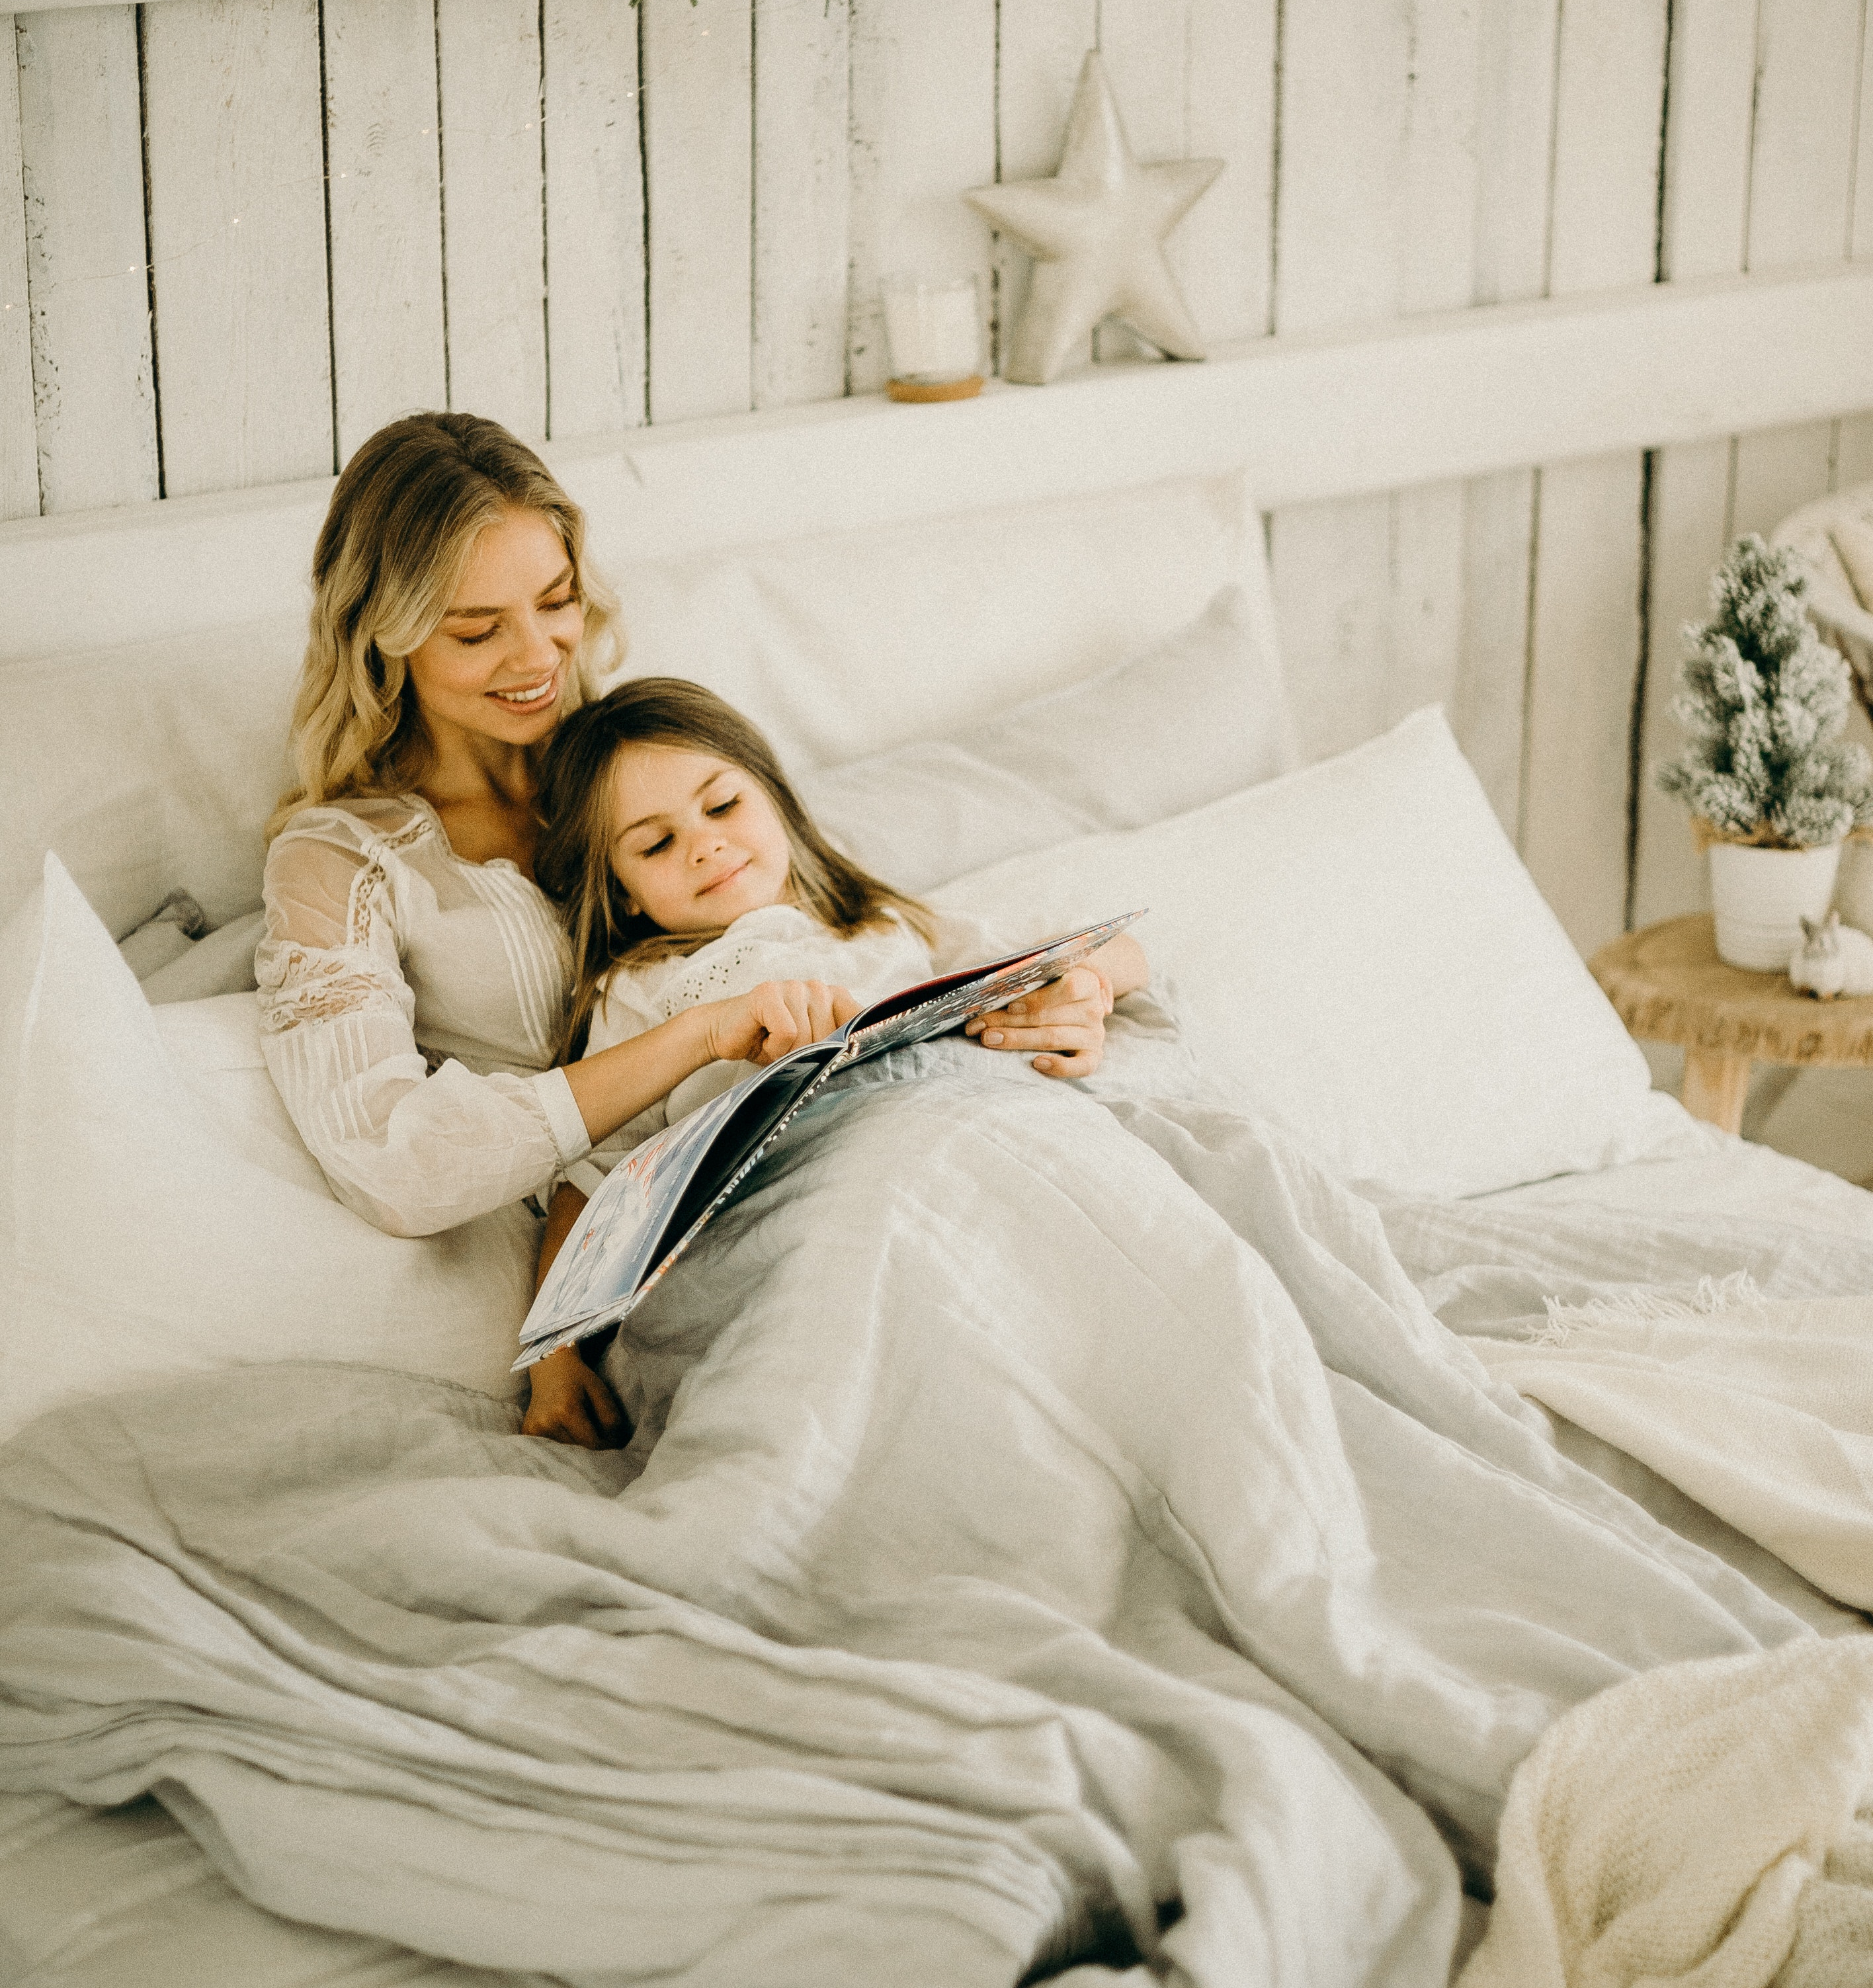 It helps to start winding down well before bedtime to give cues to your strong-willed, spirited children that it is time to read bedtime stories and rest after an energetic day. #theerailivedin #bedtimestories